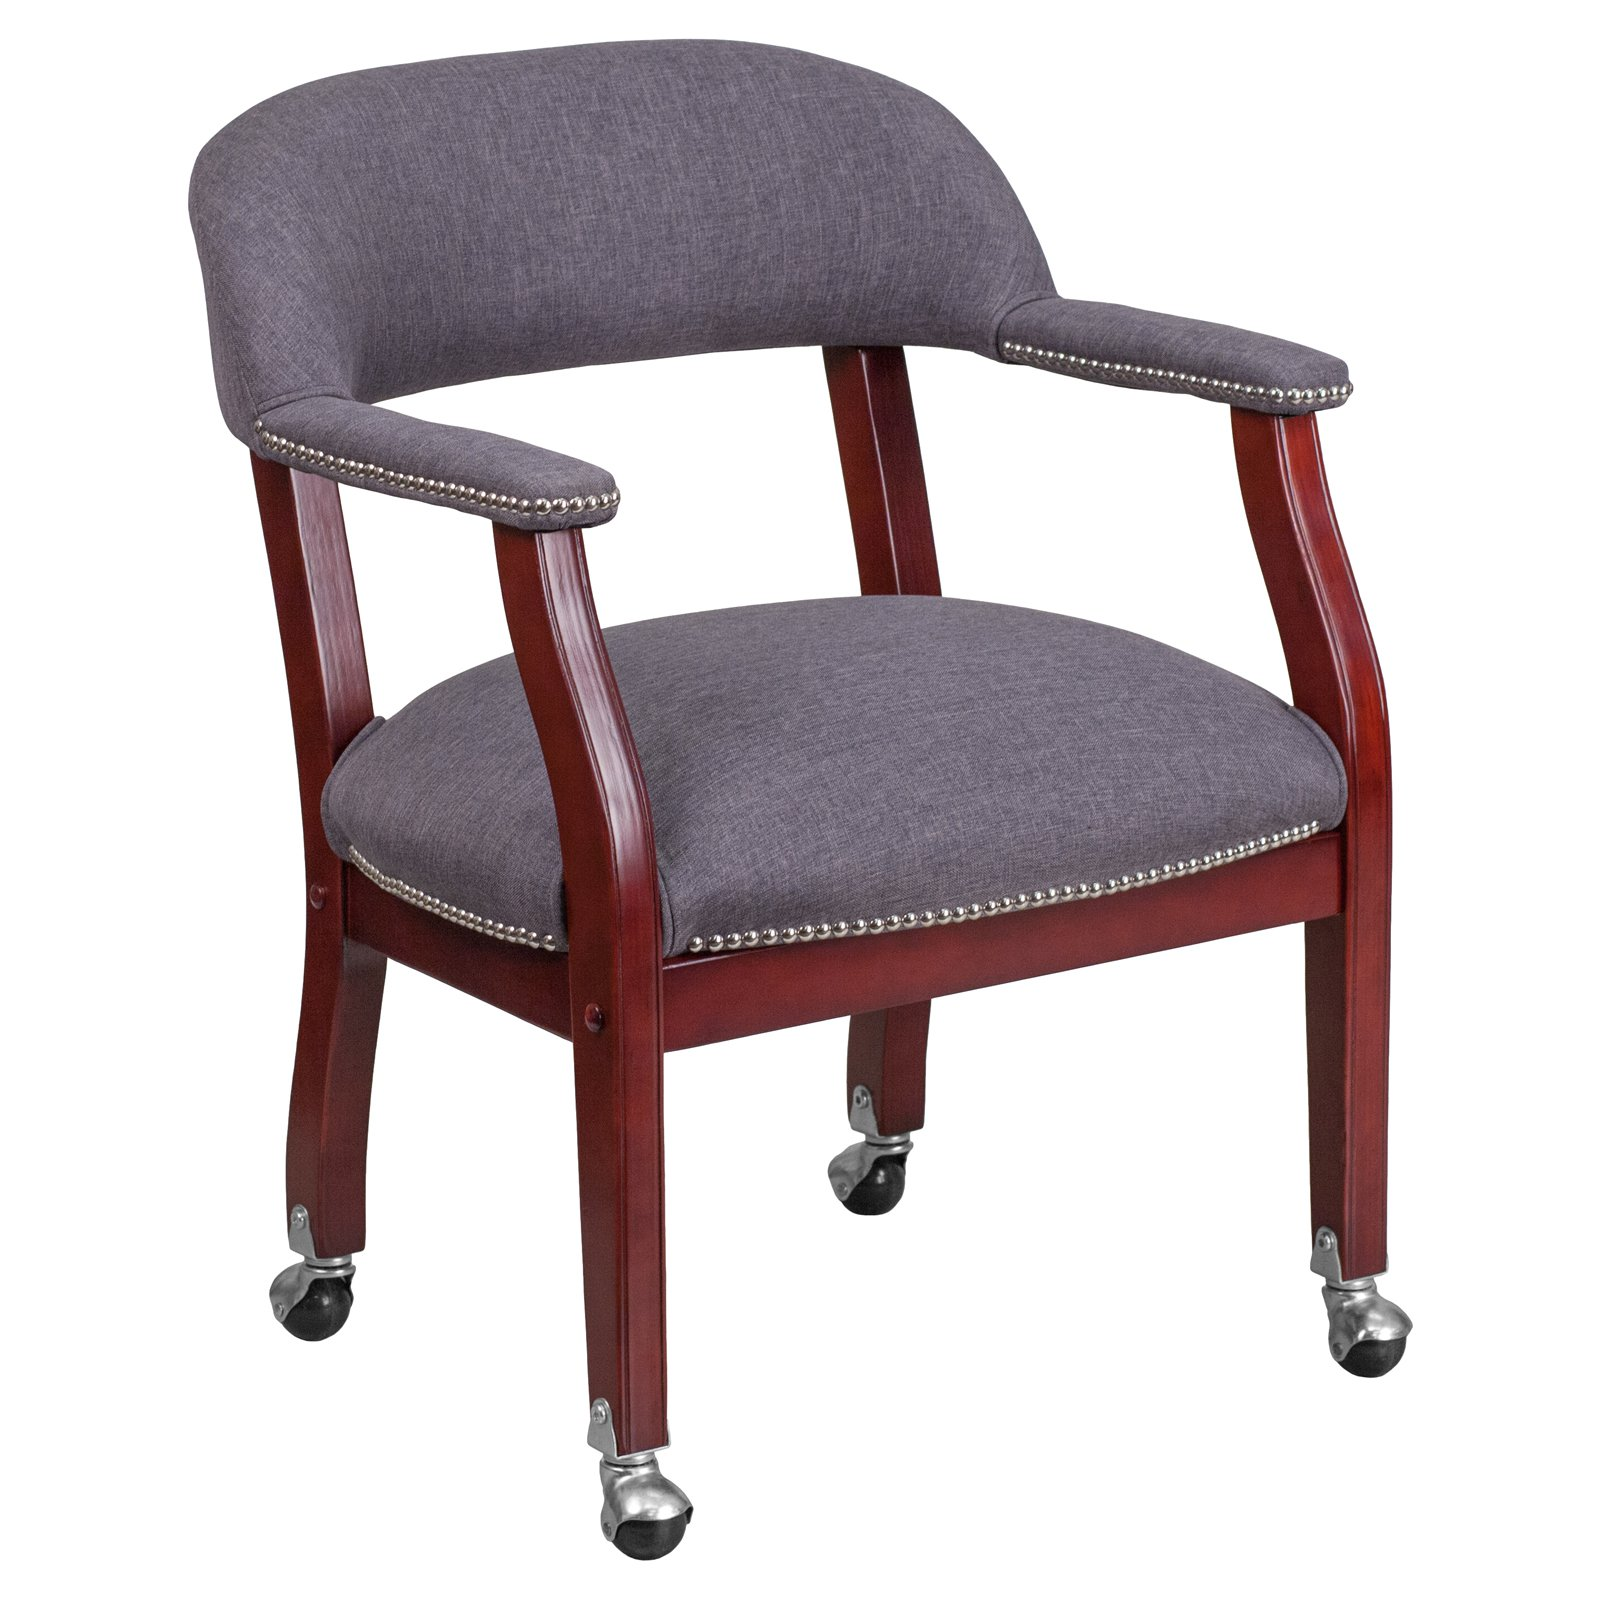 Flash Furniture Gray Fabric Luxurious Conference Room Chair with Silver Trim Nails and Casters